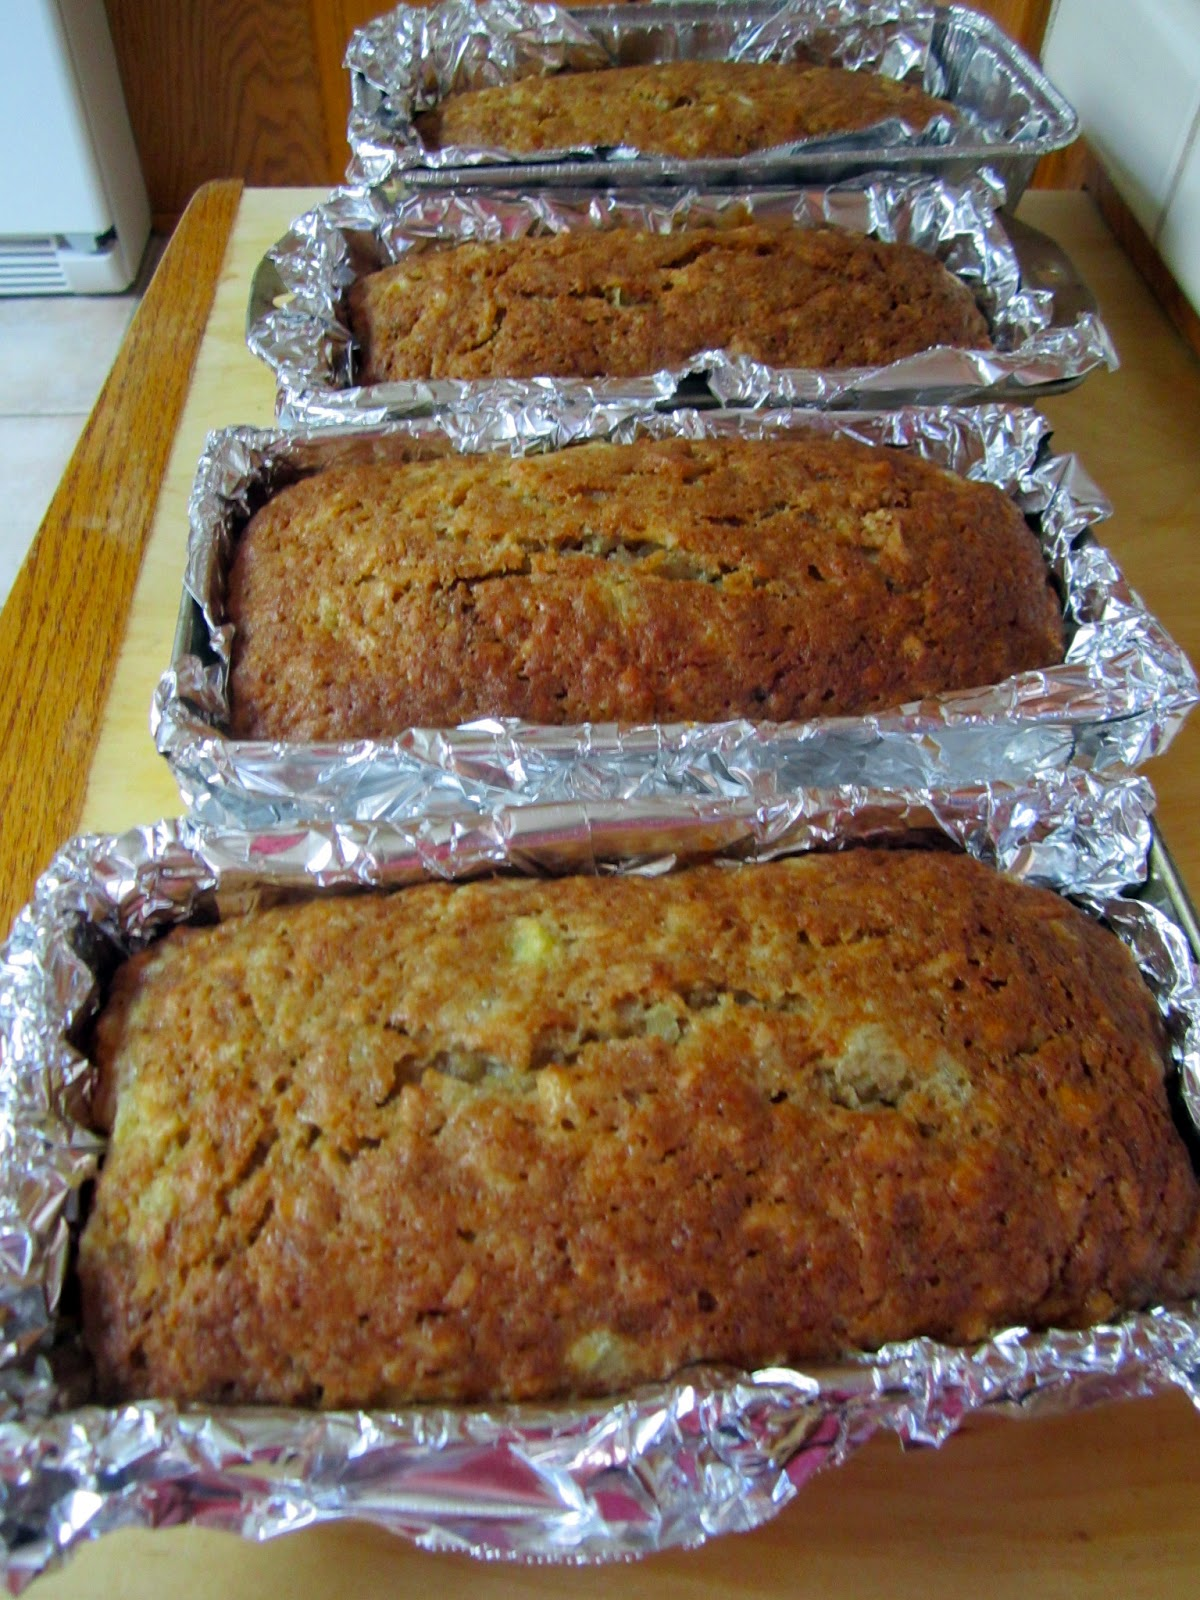 ... ve had lots of requests for my Banana Pineapple Coconut Bread recipe